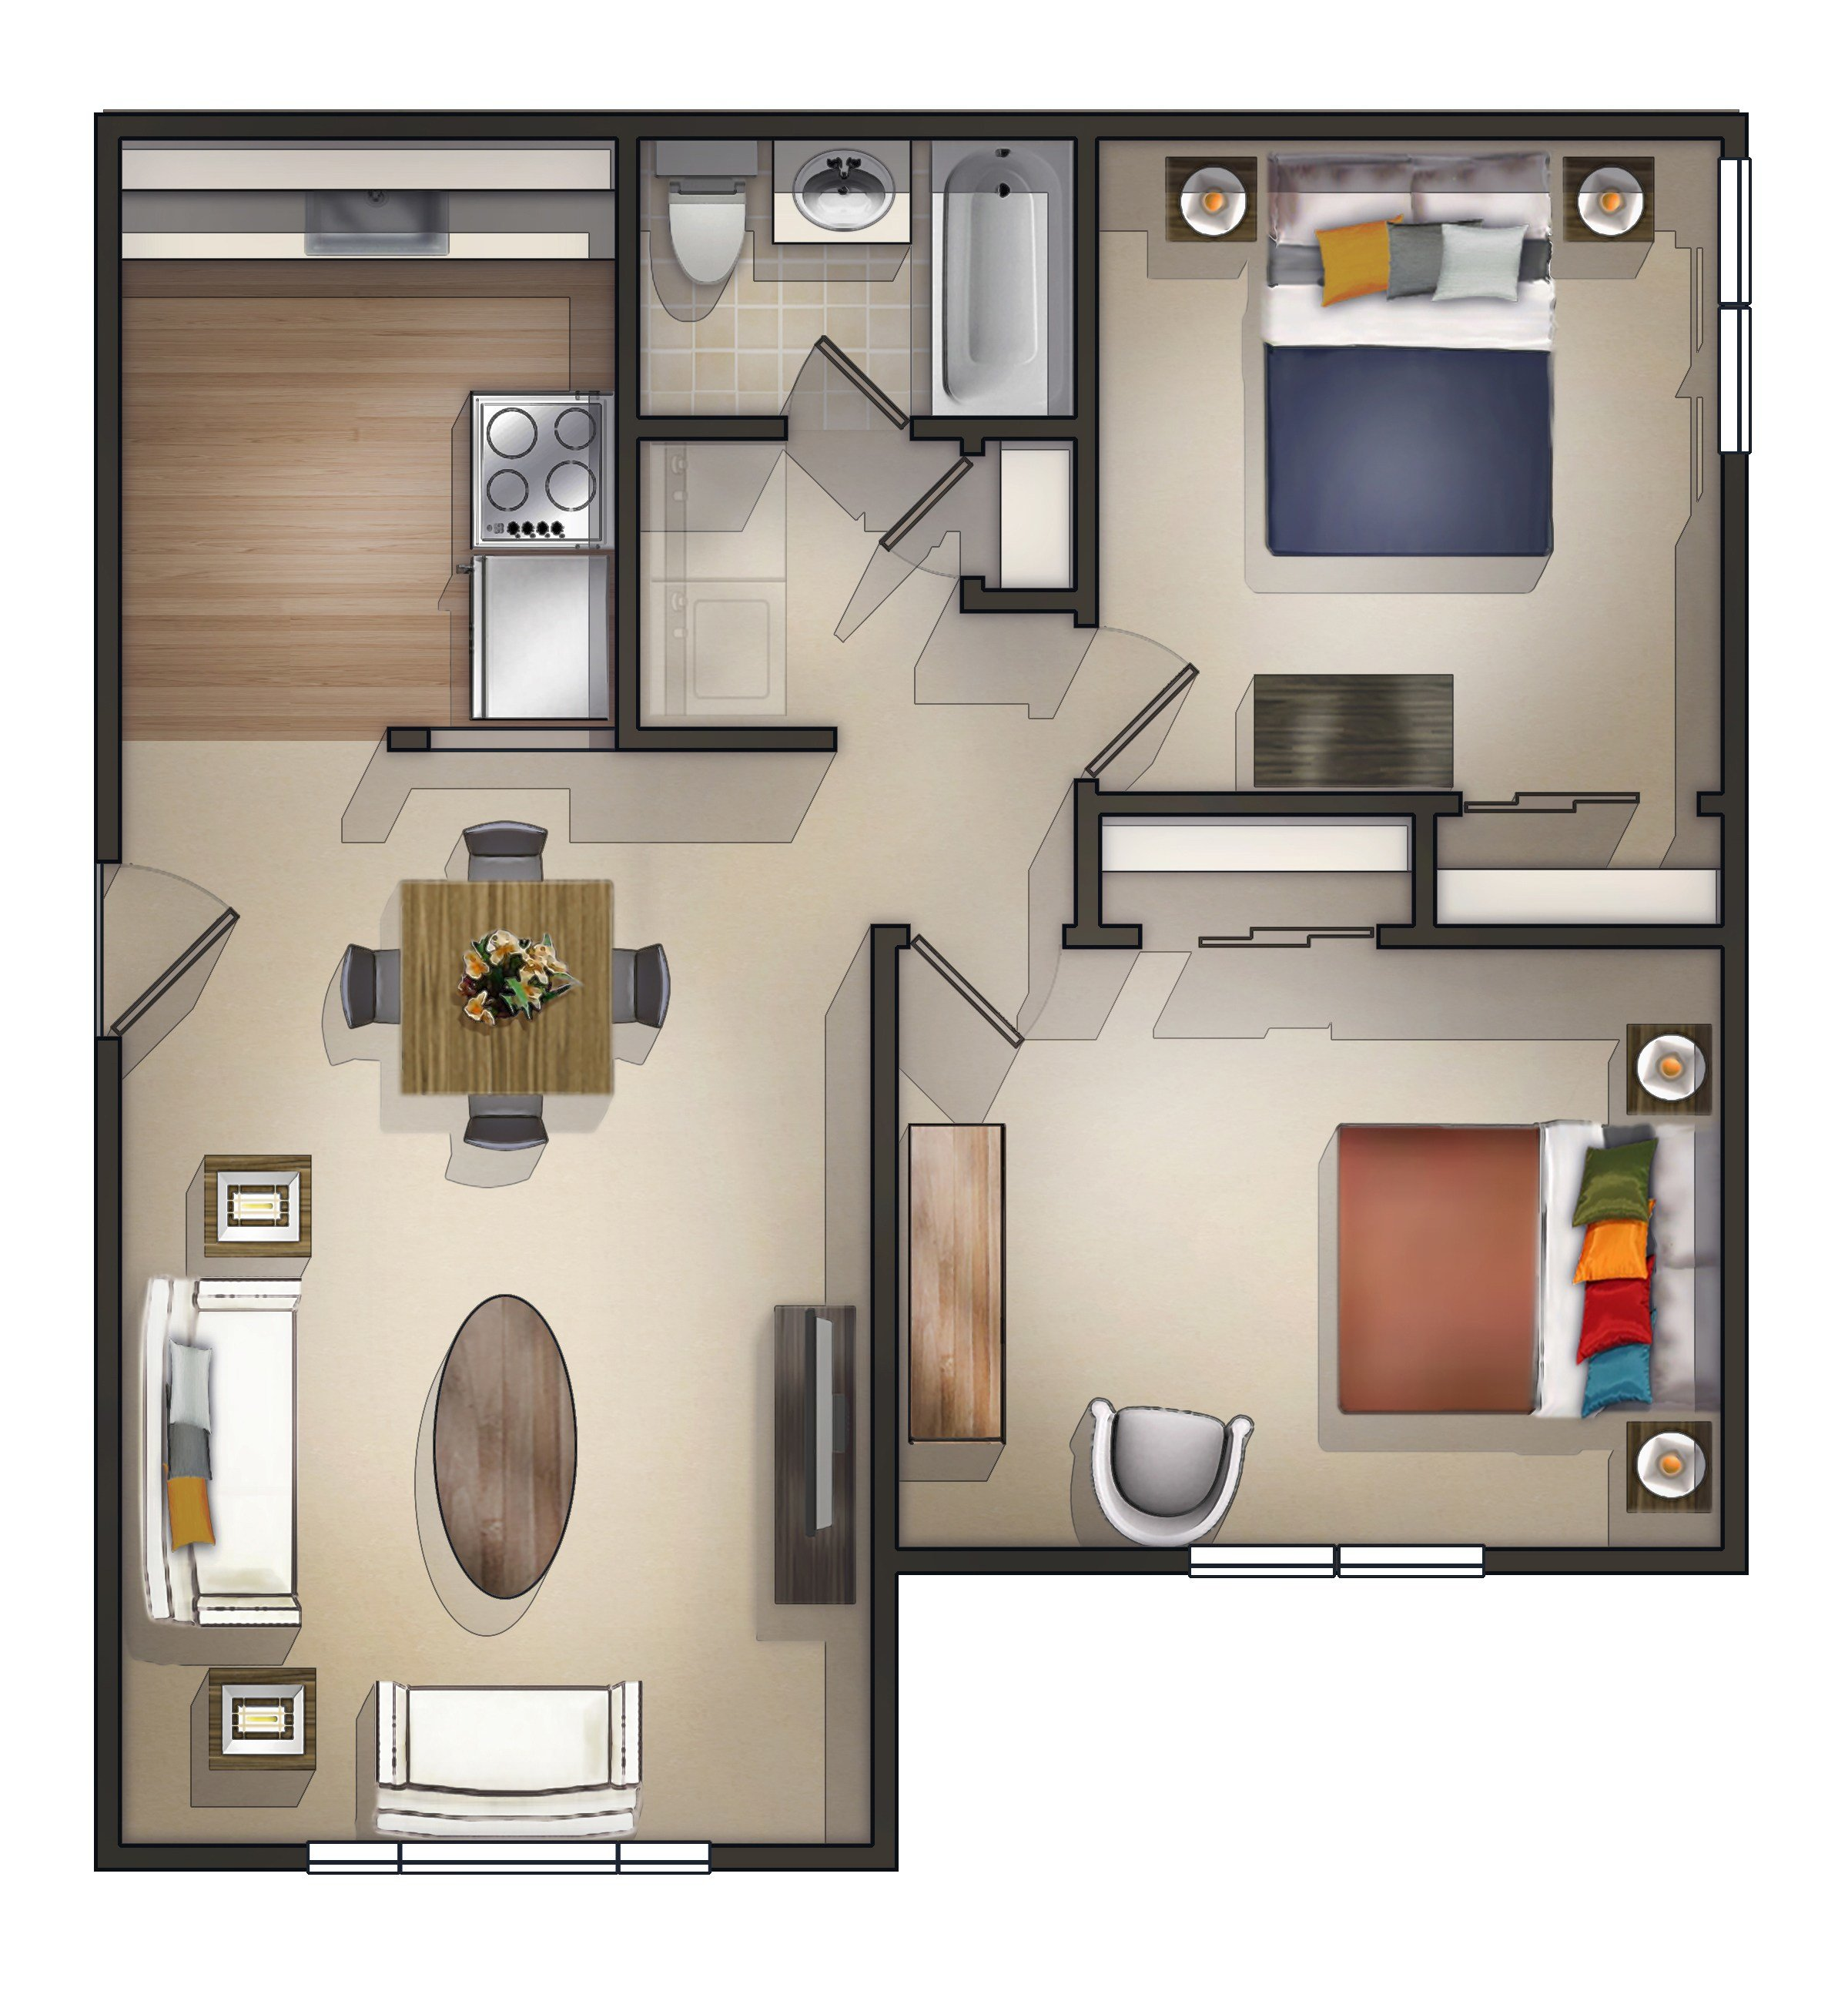 Best 2 Bedroom Apartment In Sanford Me At Sanford Manor Apartments With Pictures